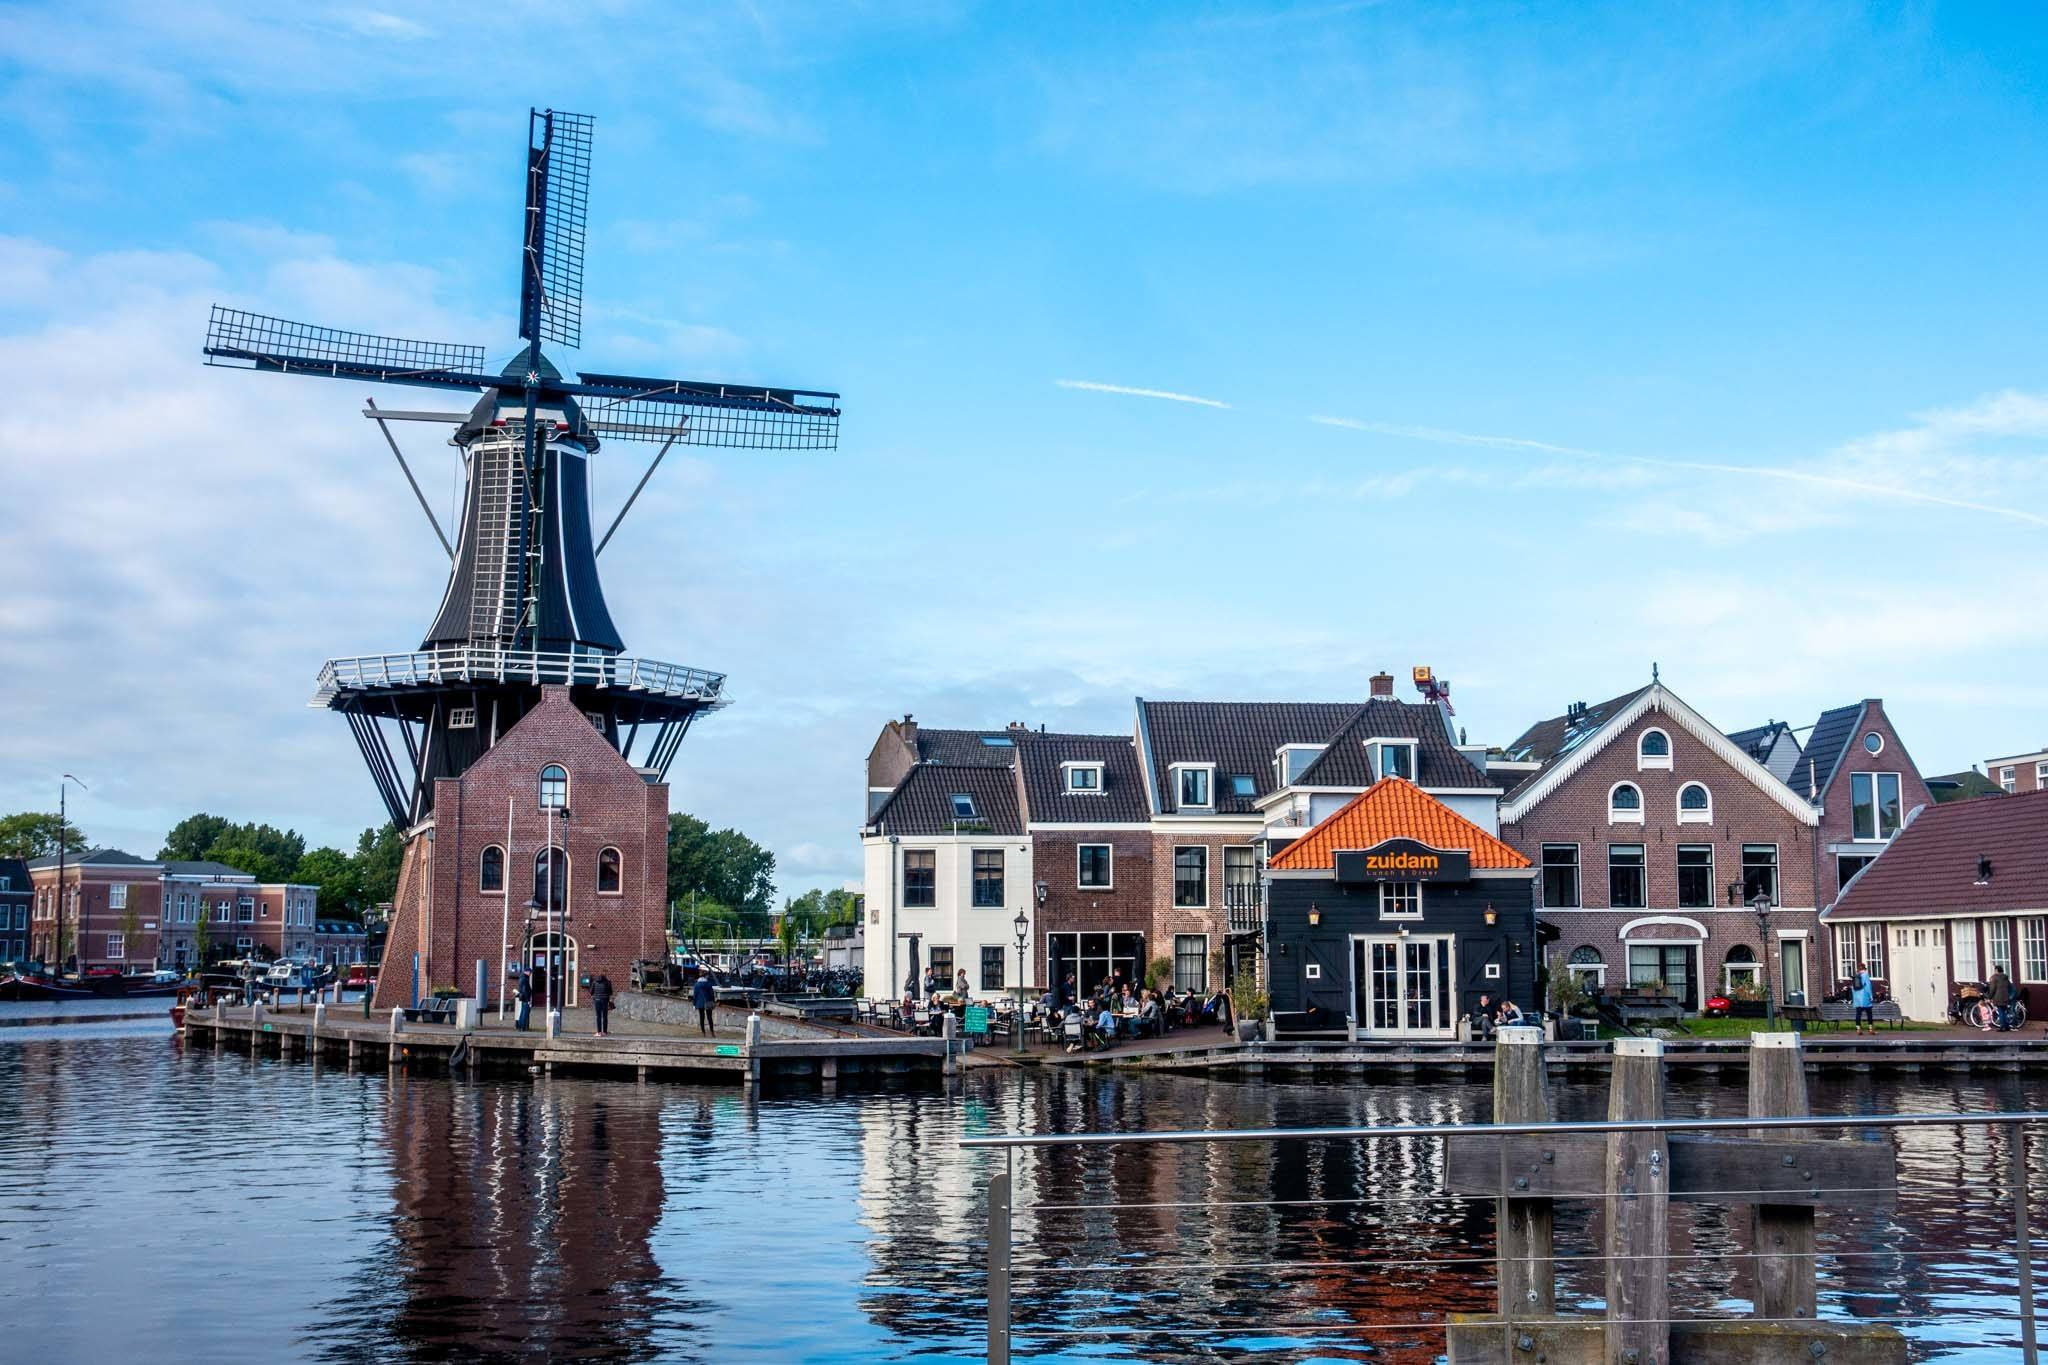 Windmill and buildings overlooking a river in Haarlem Netherlands